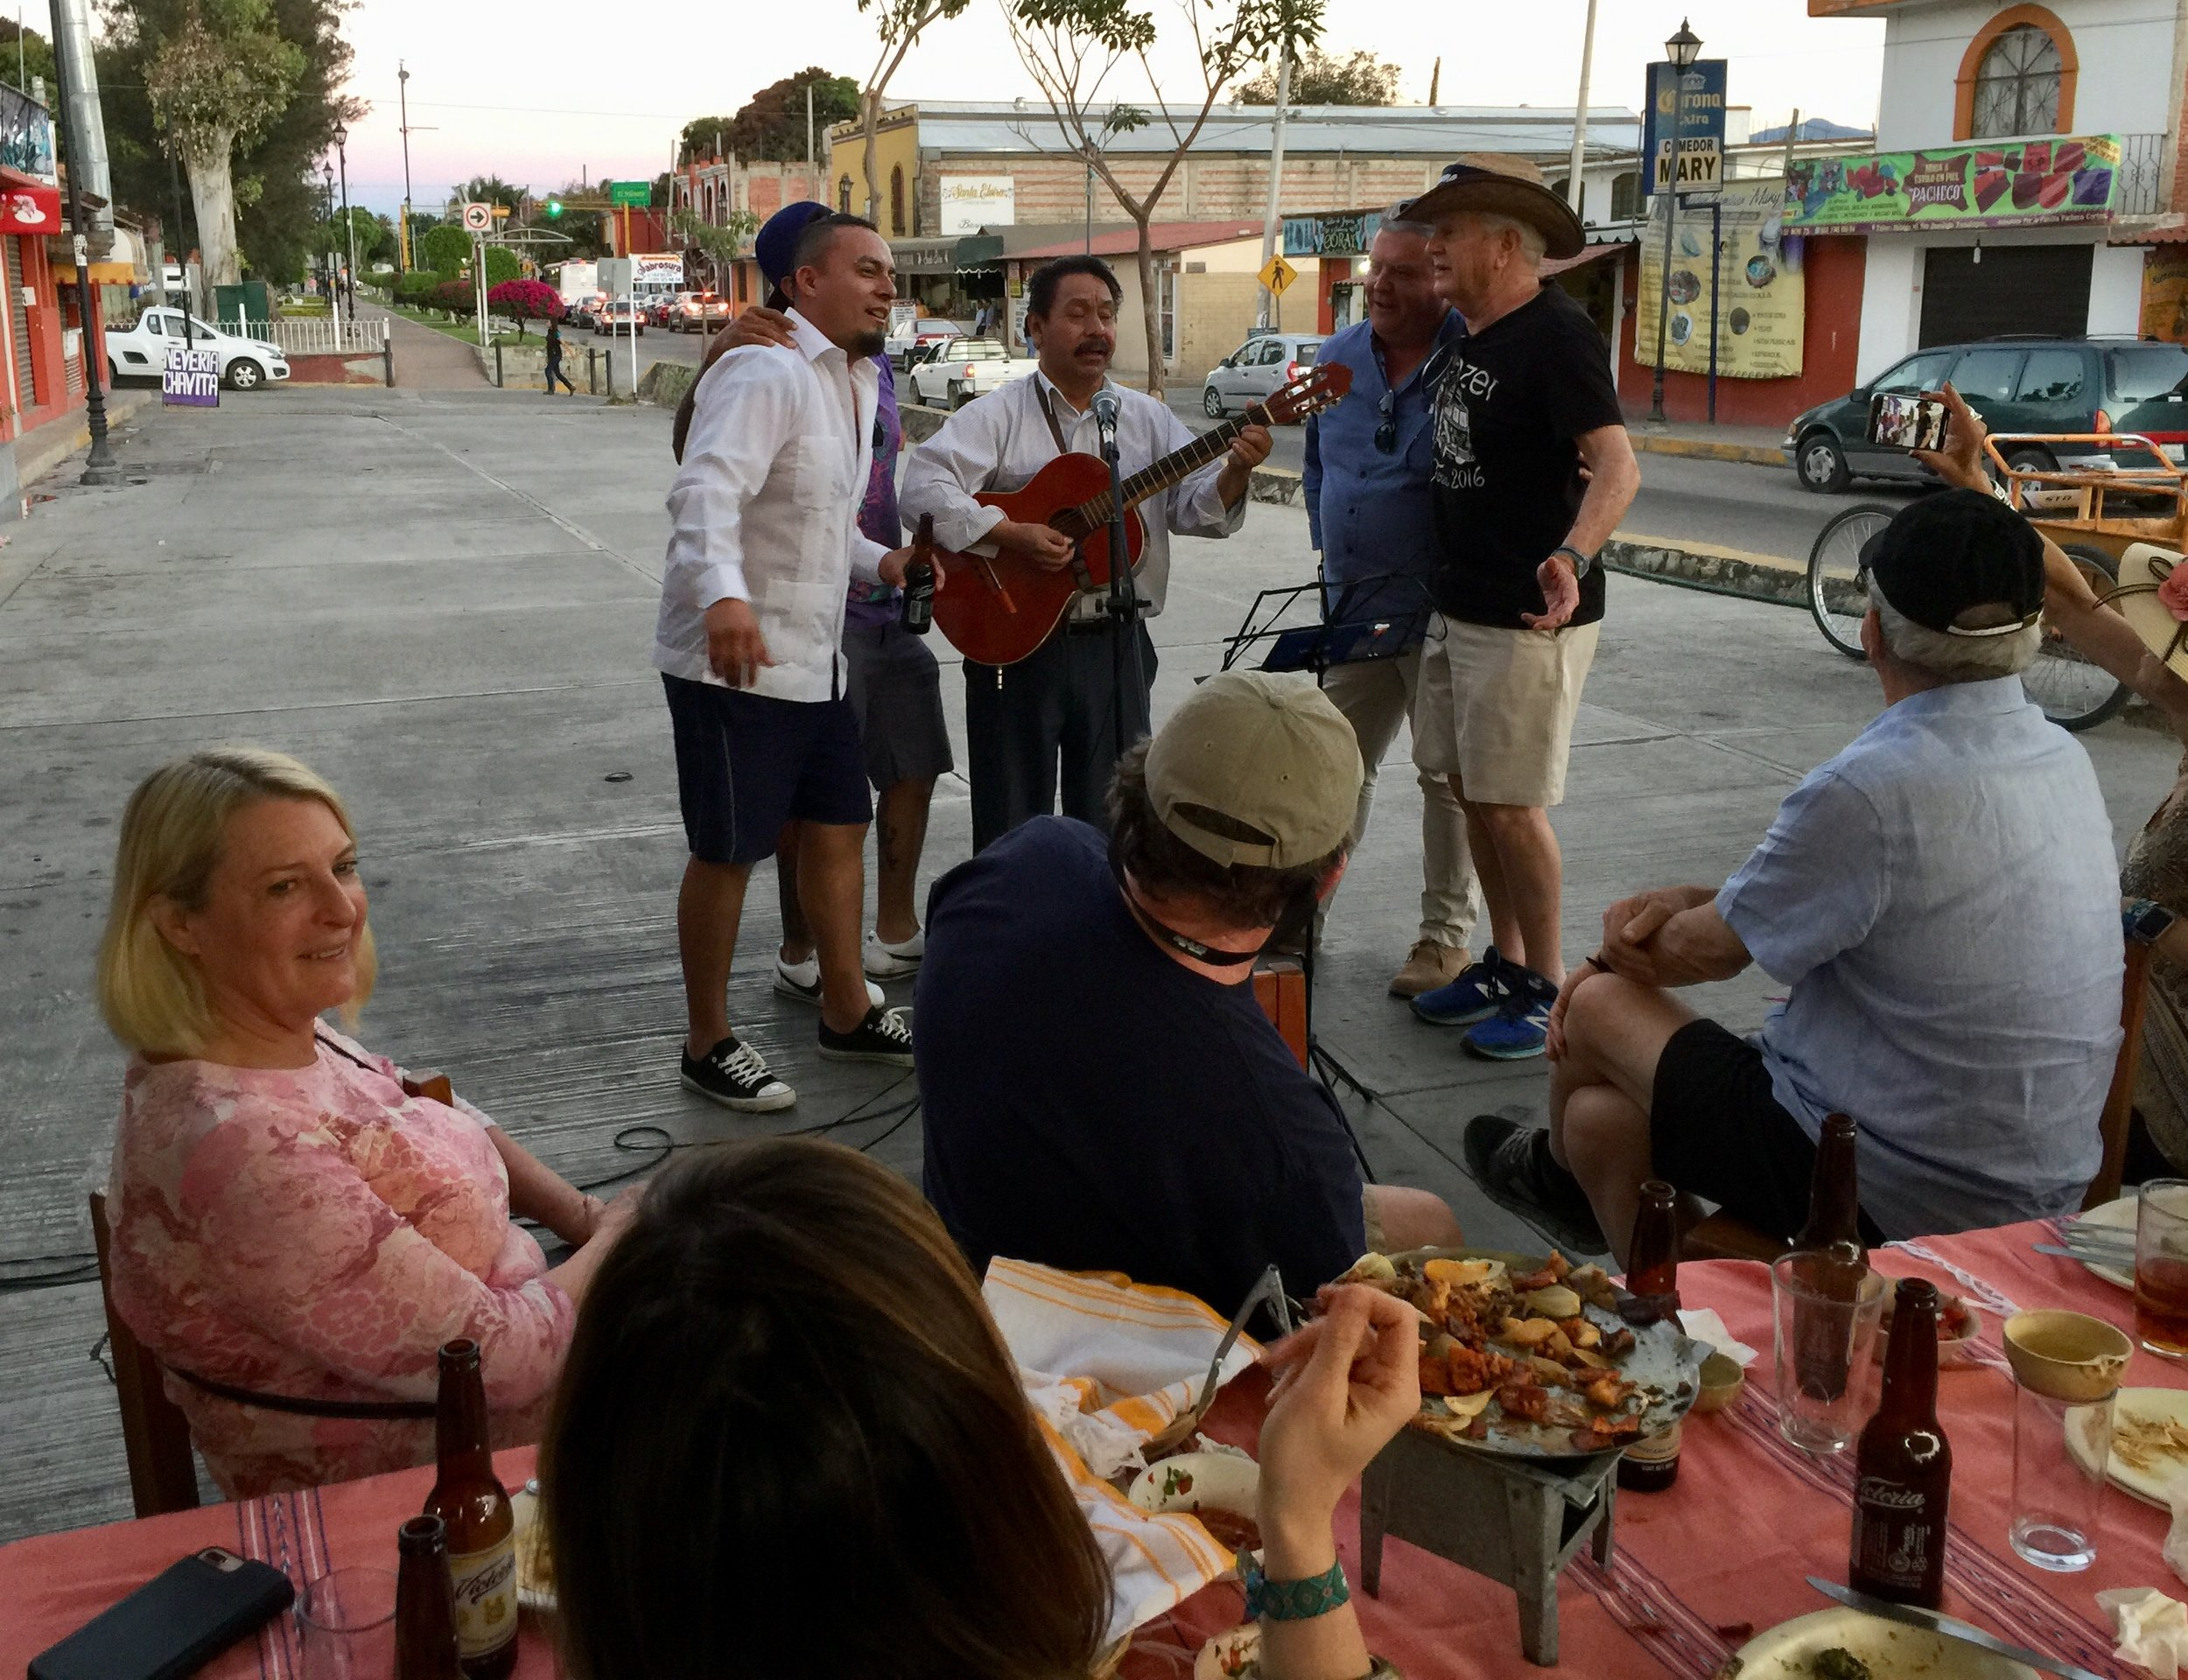 Impromptu karaoke after dinner in the parking lot at La Soledad.